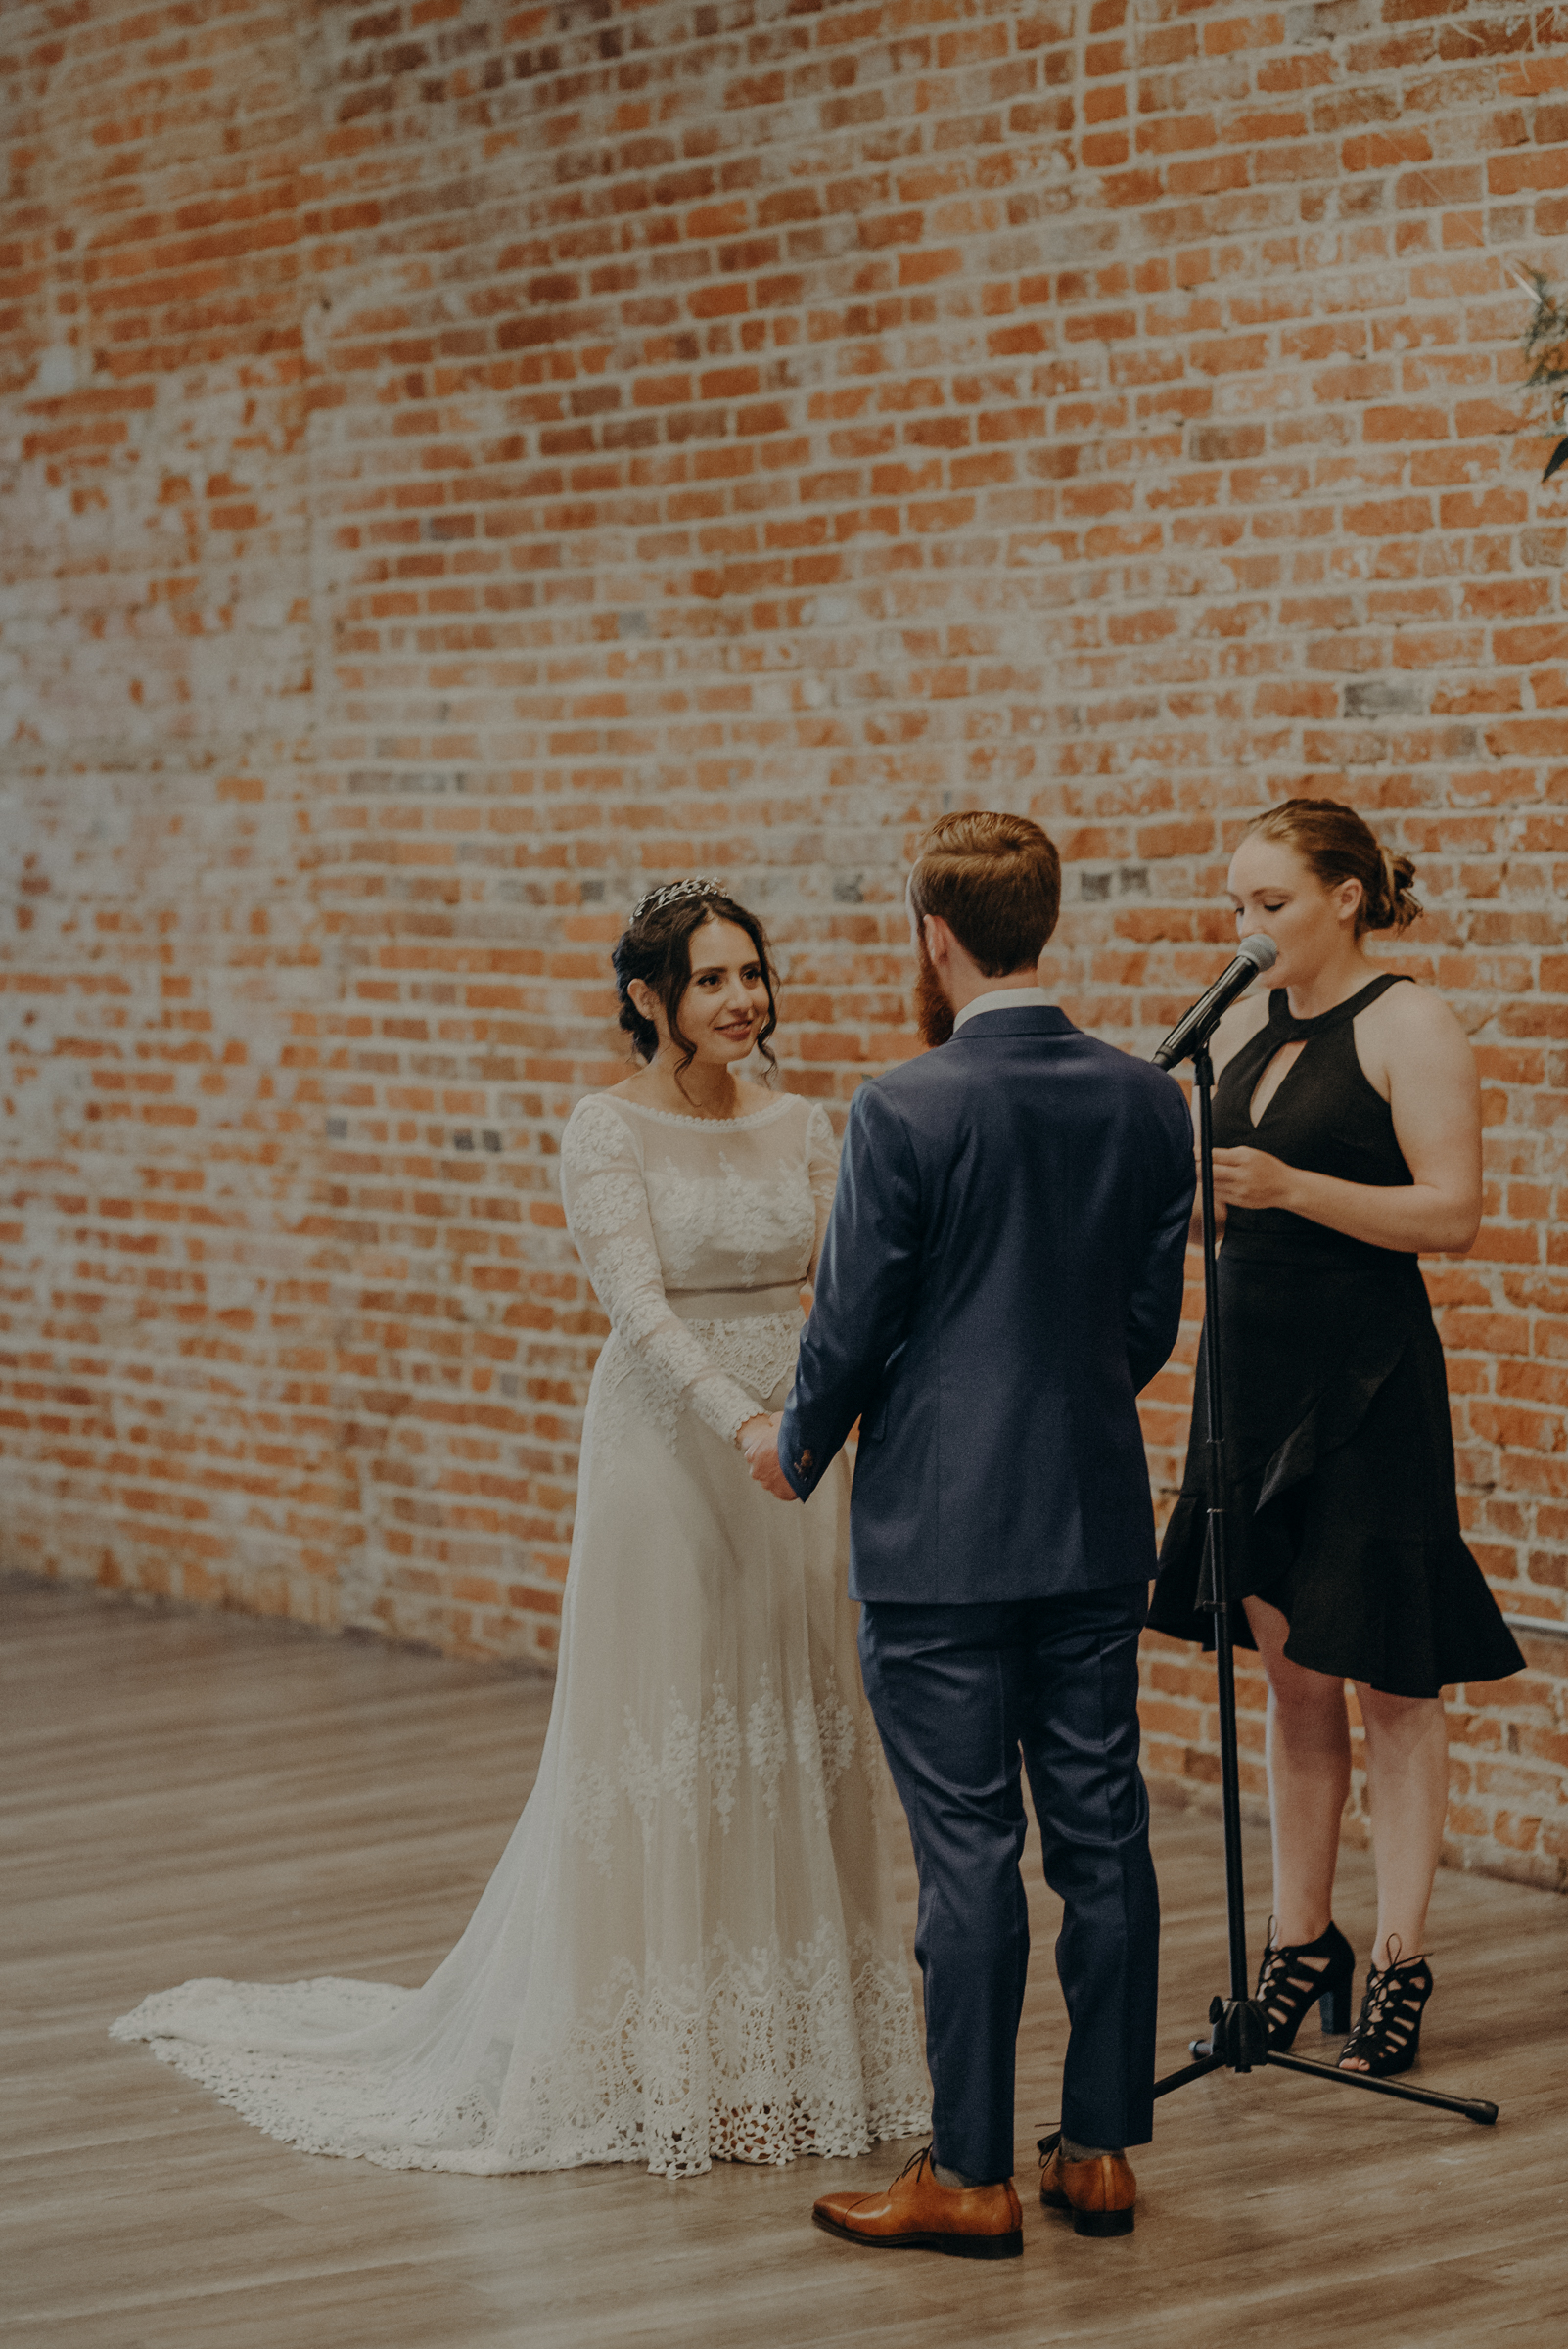 Isaiah + Taylor Photography - The Unique Space Wedding, Los Angeles Wedding Photography 111.jpg